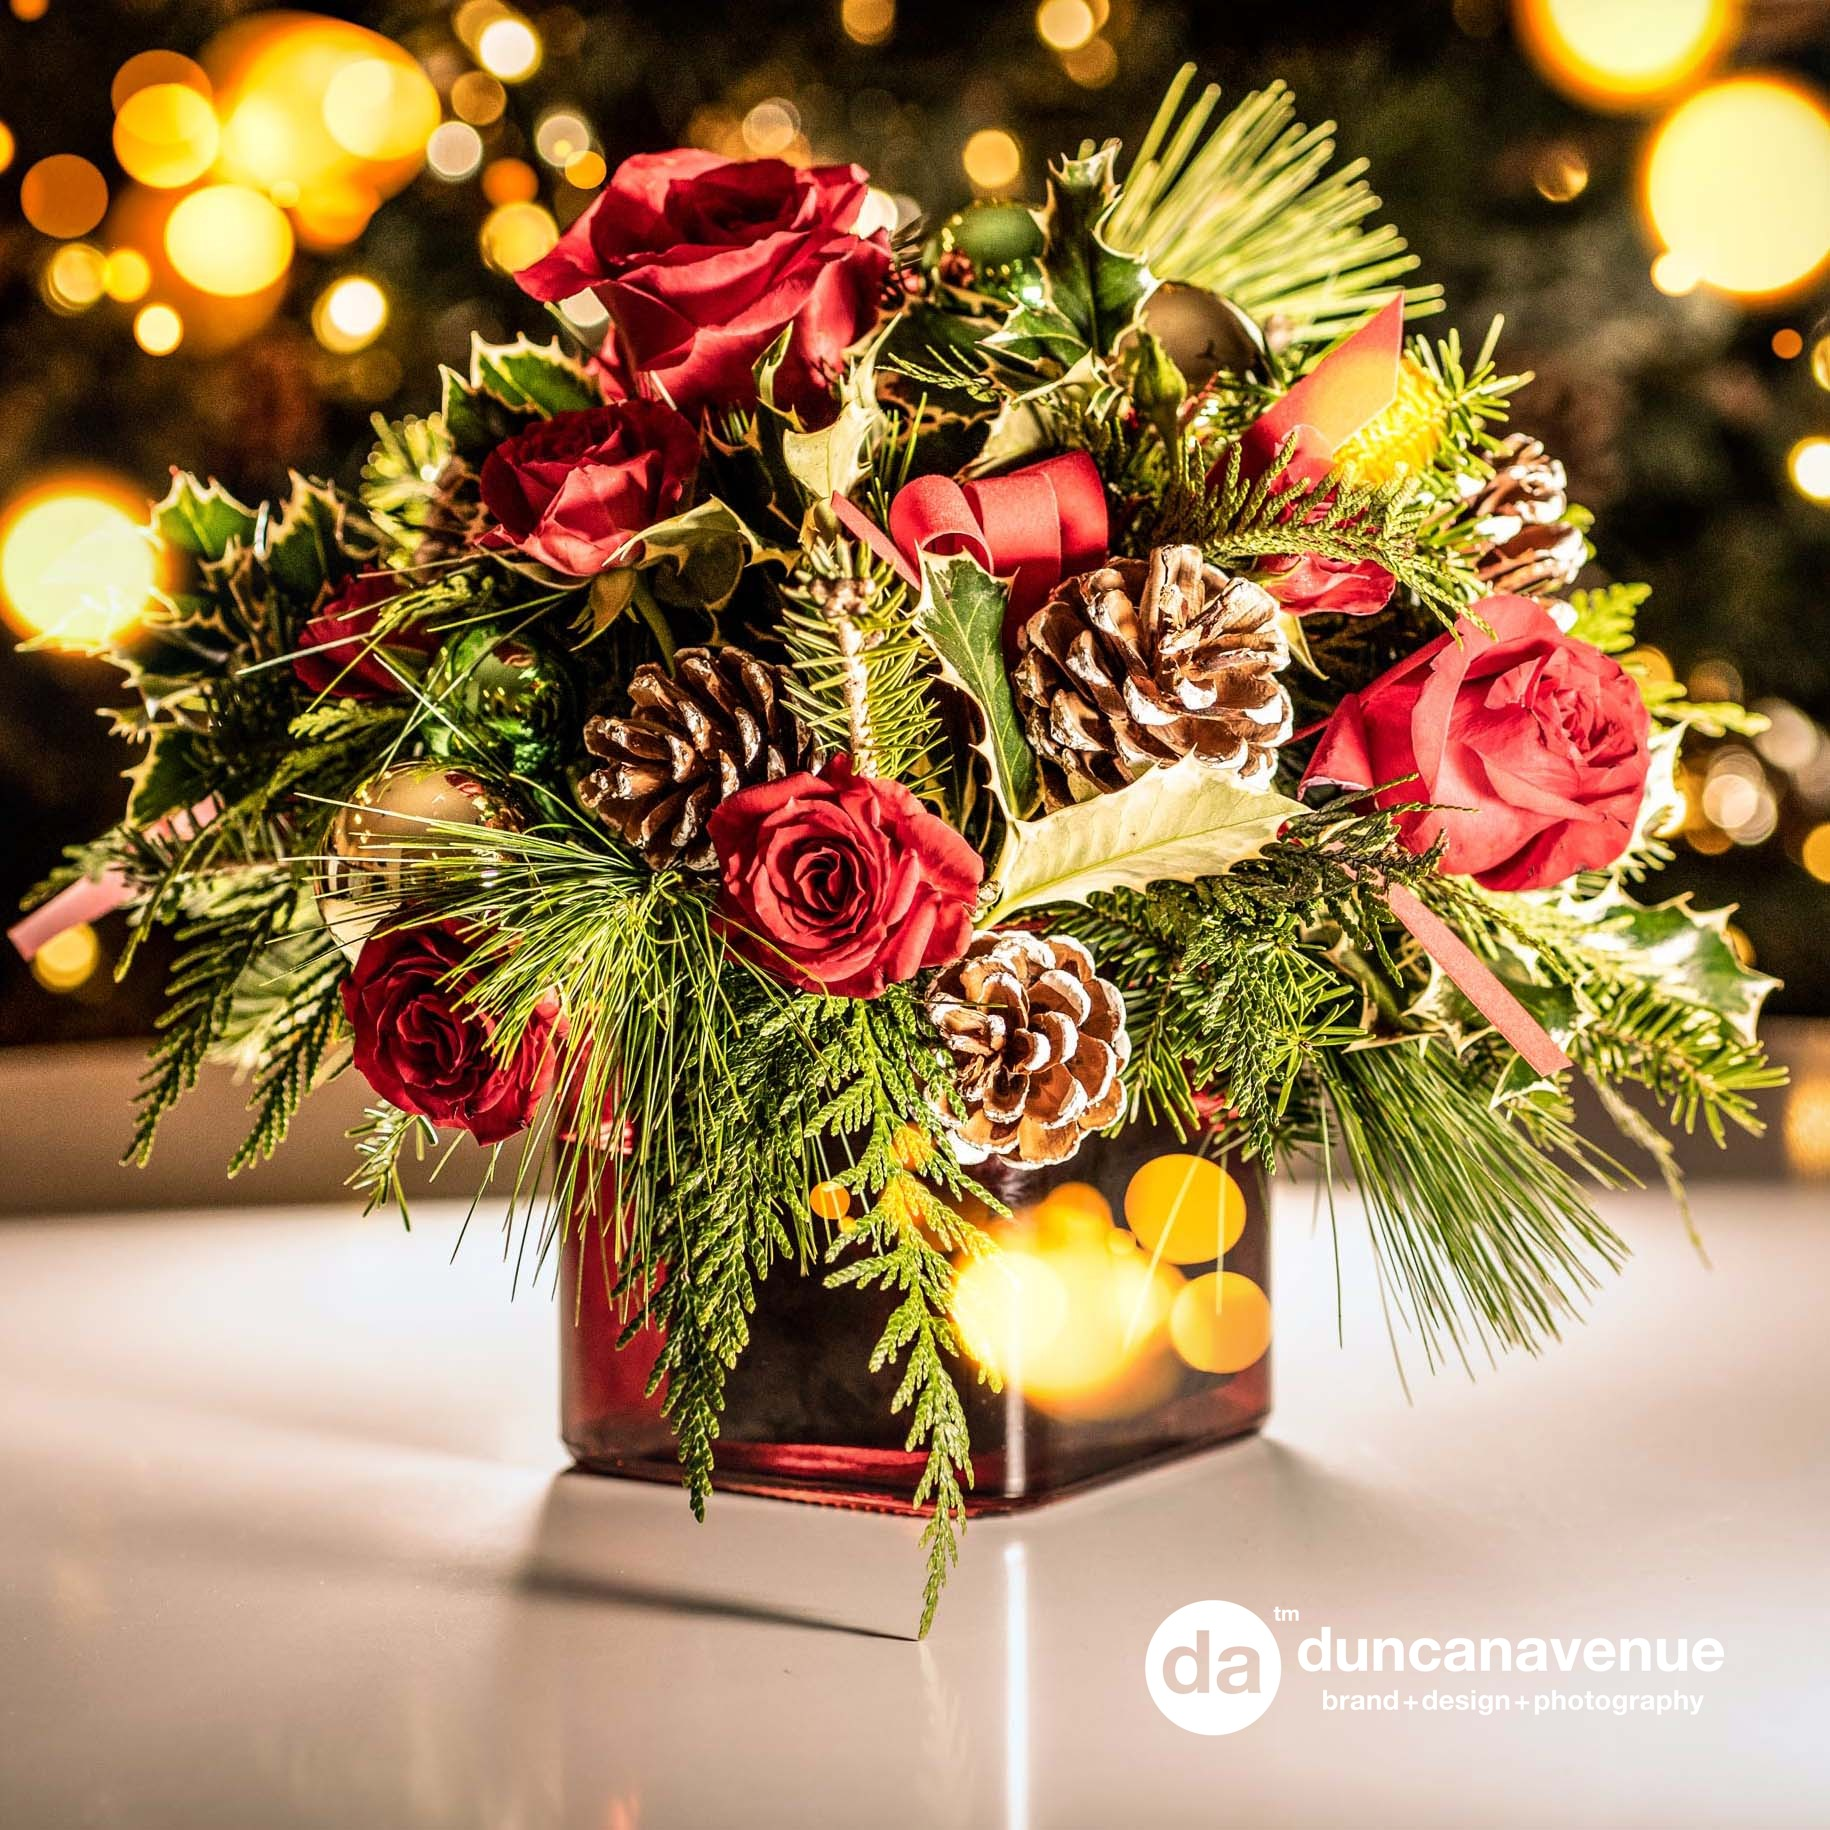 Decorating Your Home for Christmas – by Designer Maxwell Alexander